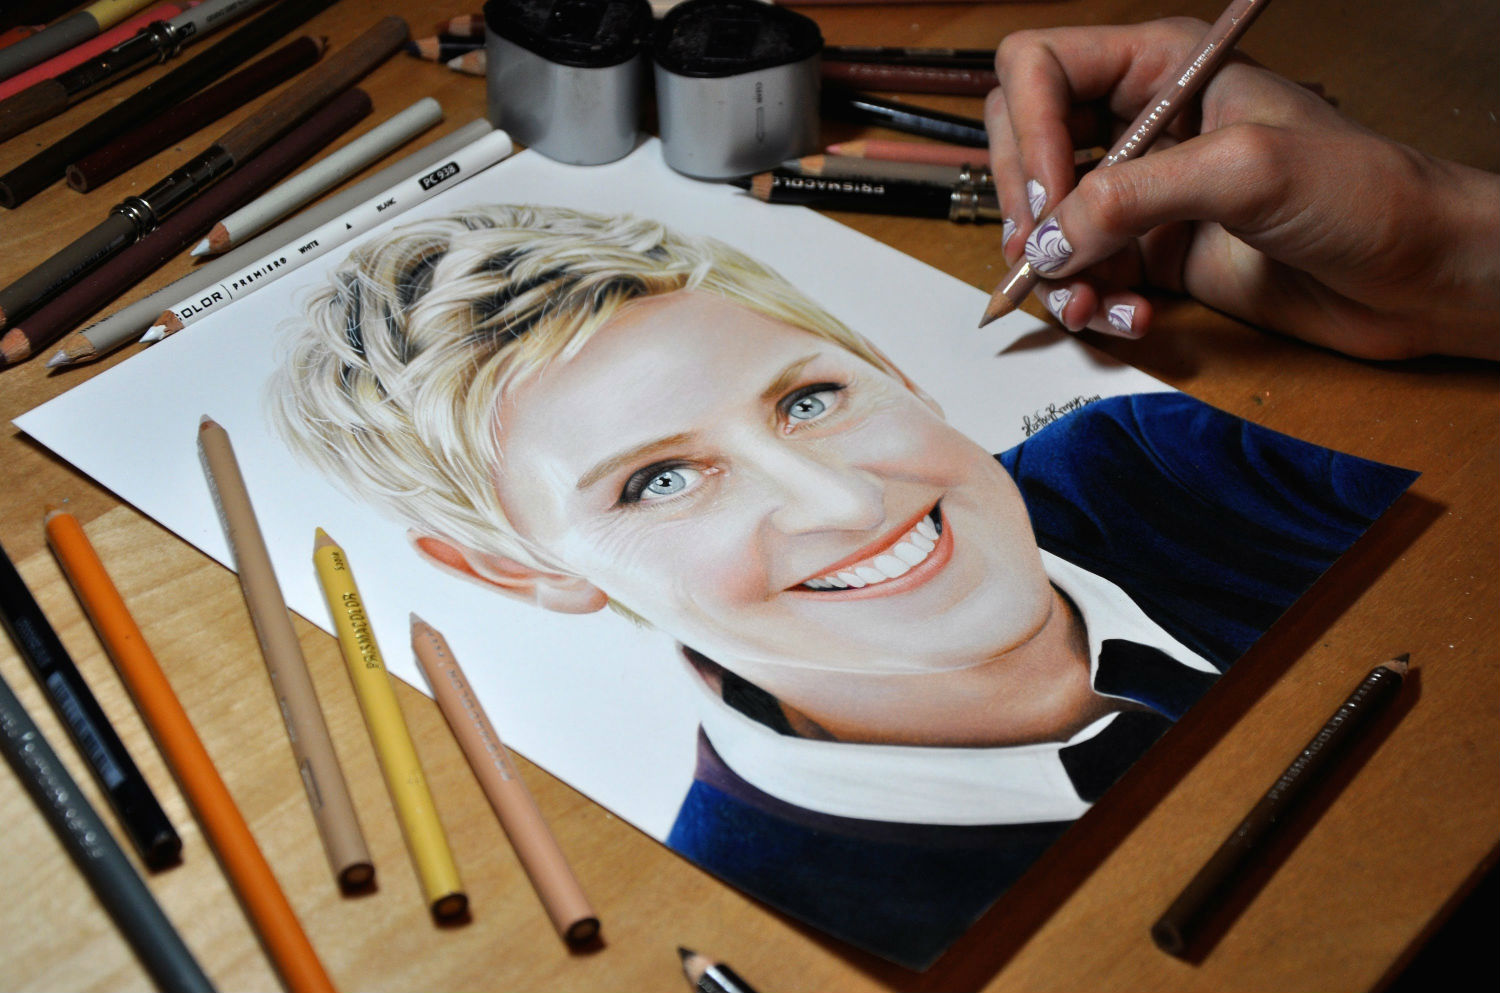 ellen degeneres sketch heather rooney pencils